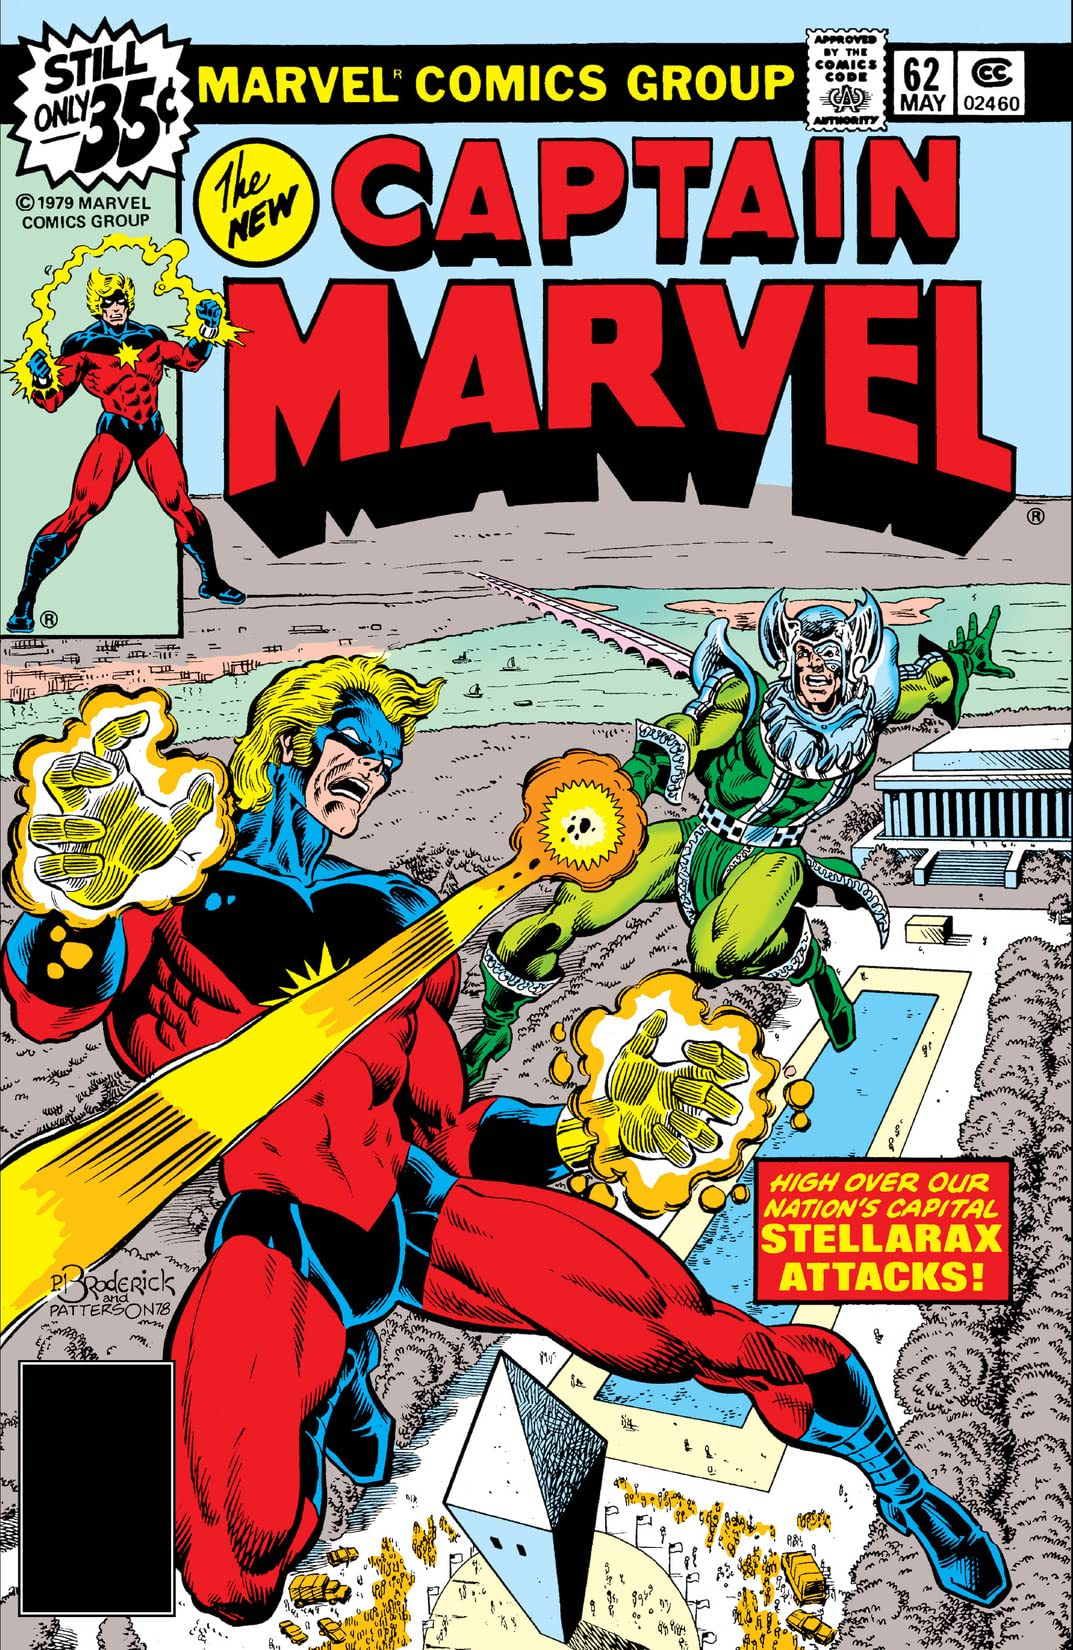 Captain Marvel (1968-1979) #62